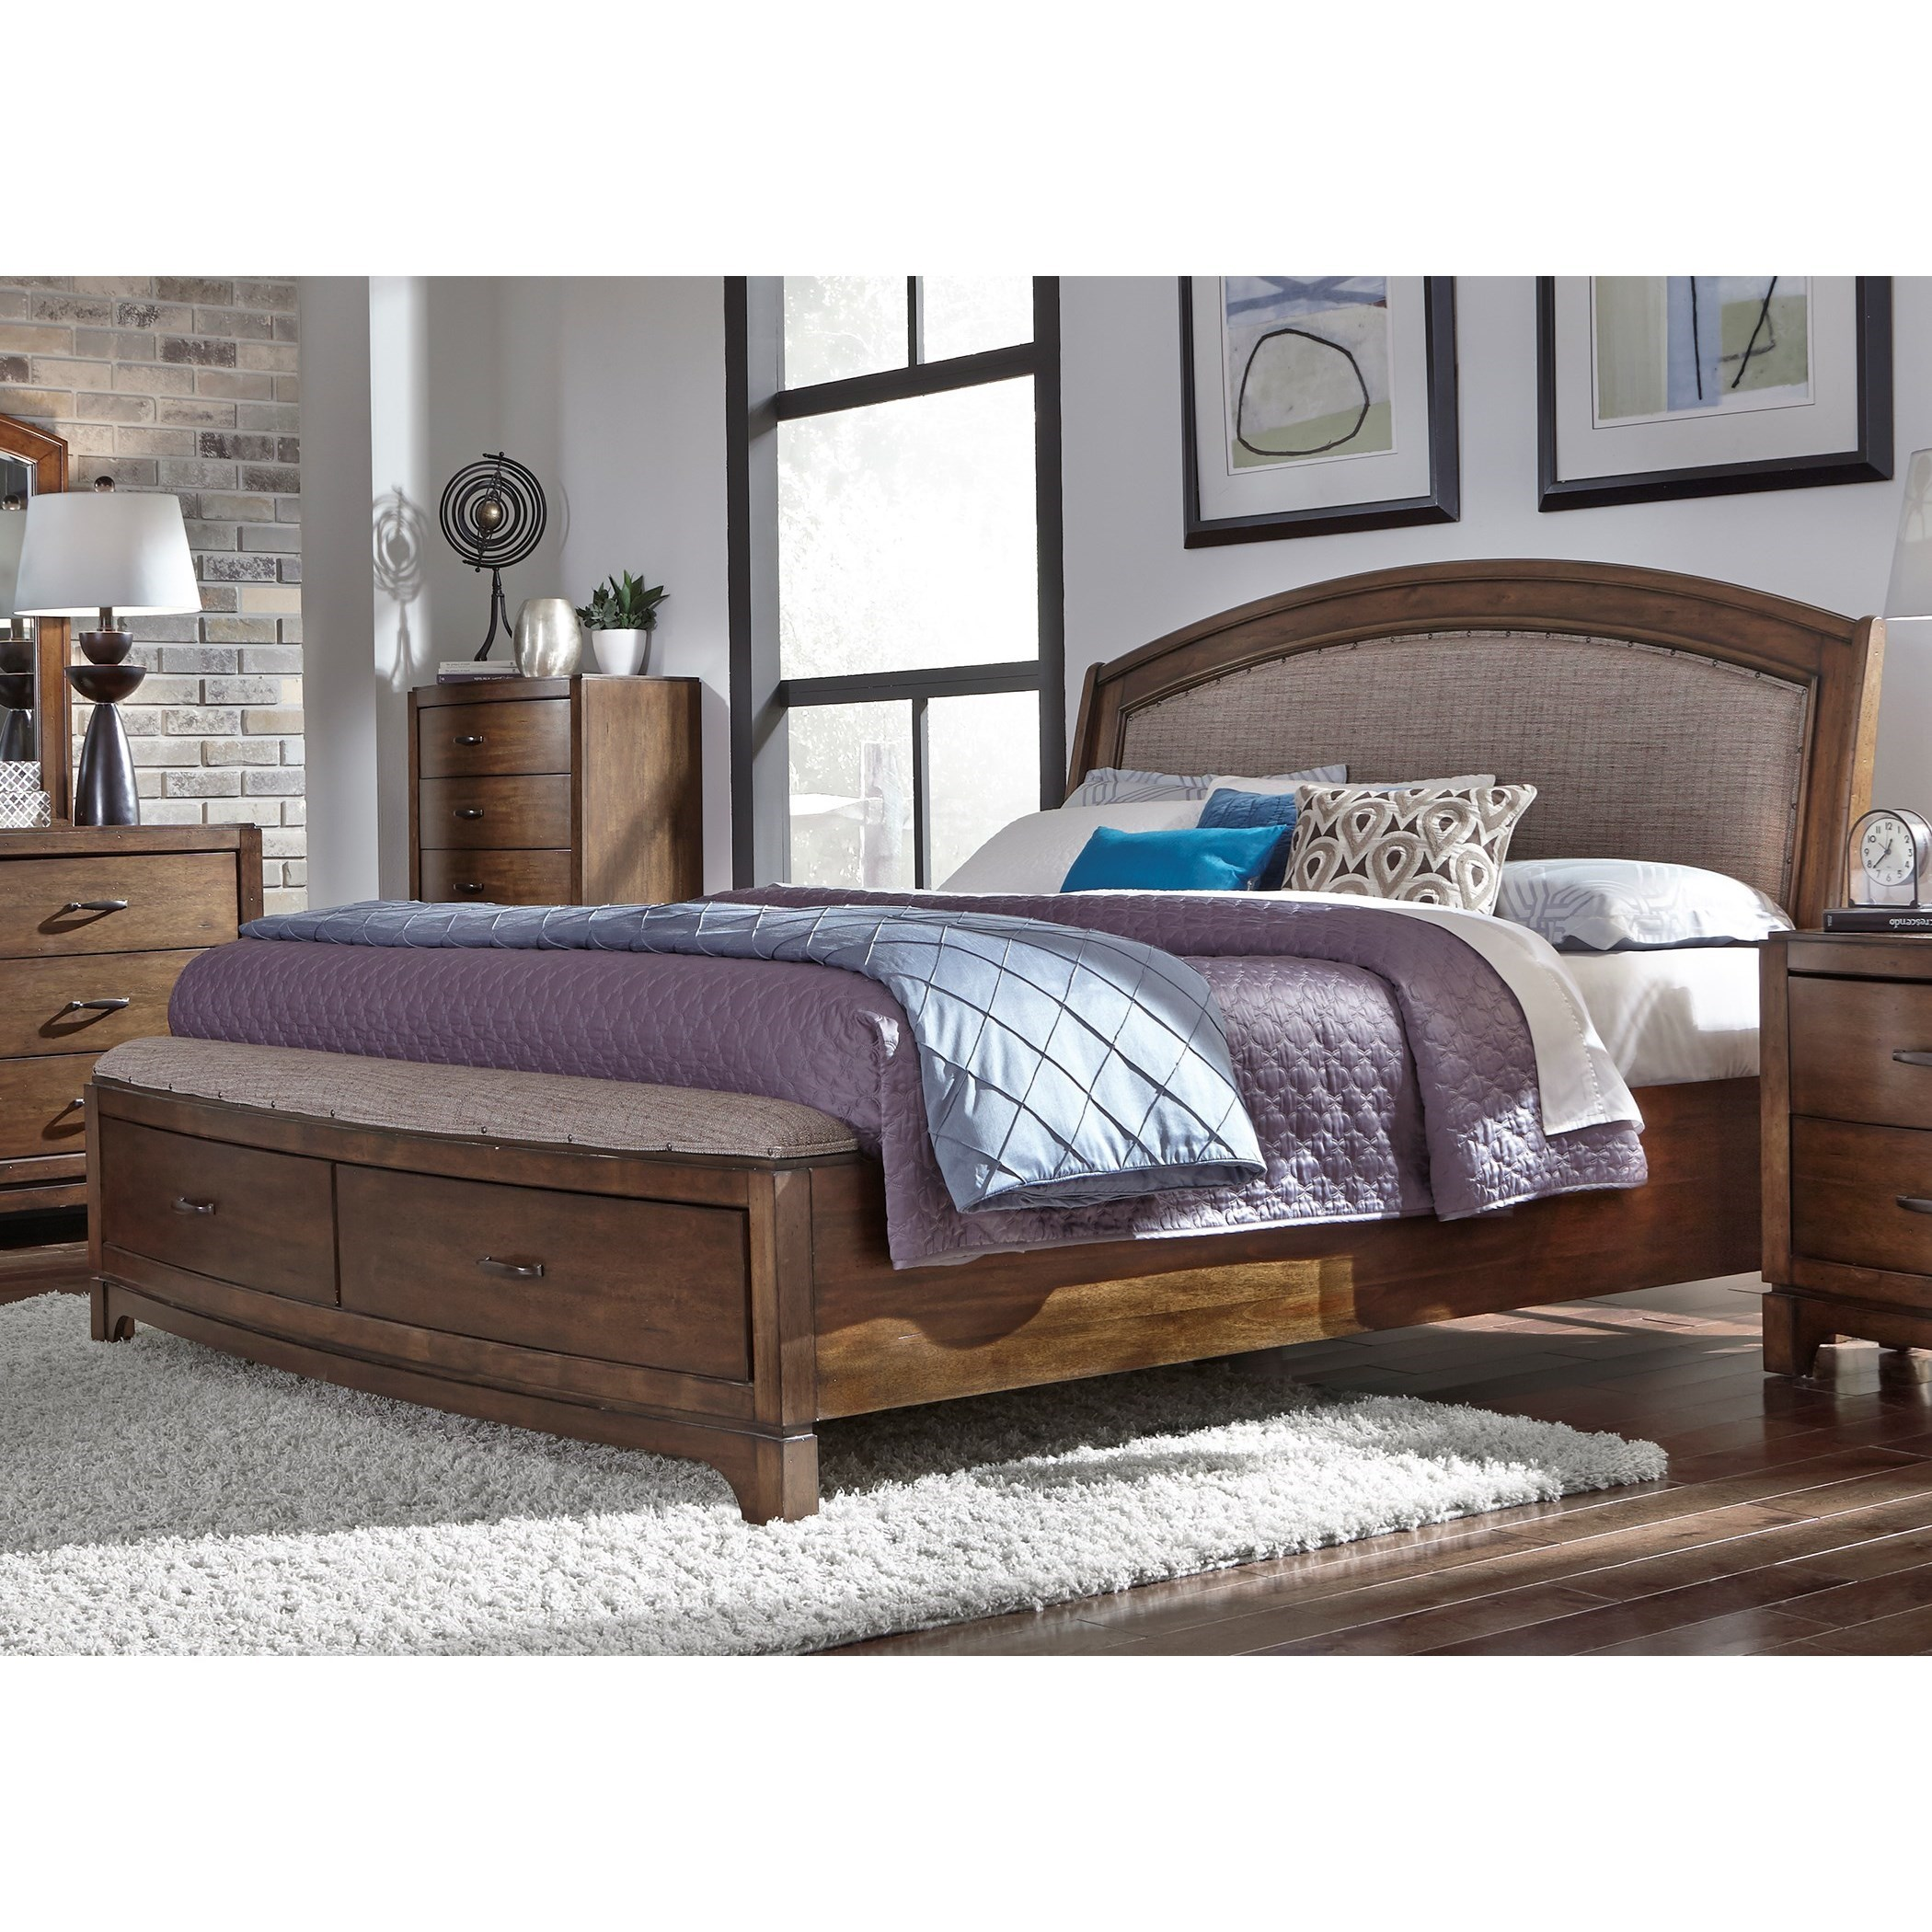 Avalon III Queen Storge Bed with Upholstered Headboard by Liberty Furniture at Darvin Furniture